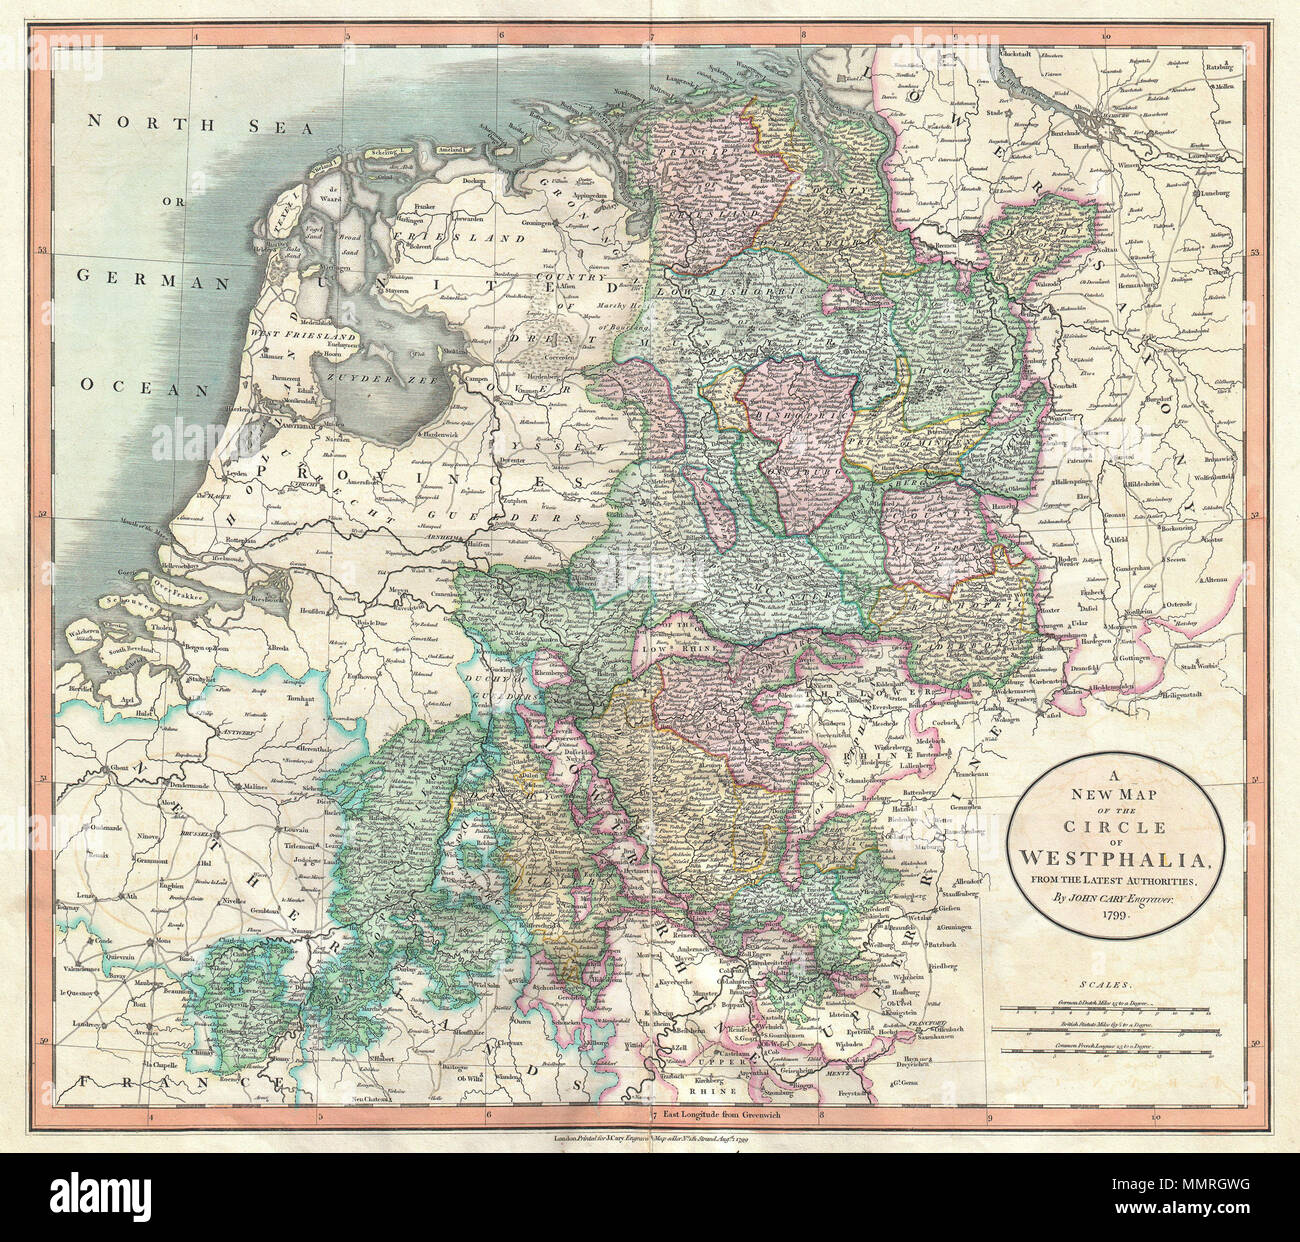 english an extremely attractive example of john carys 1799 map of the westphalia region of germany covers from the north sea to the lower rhine